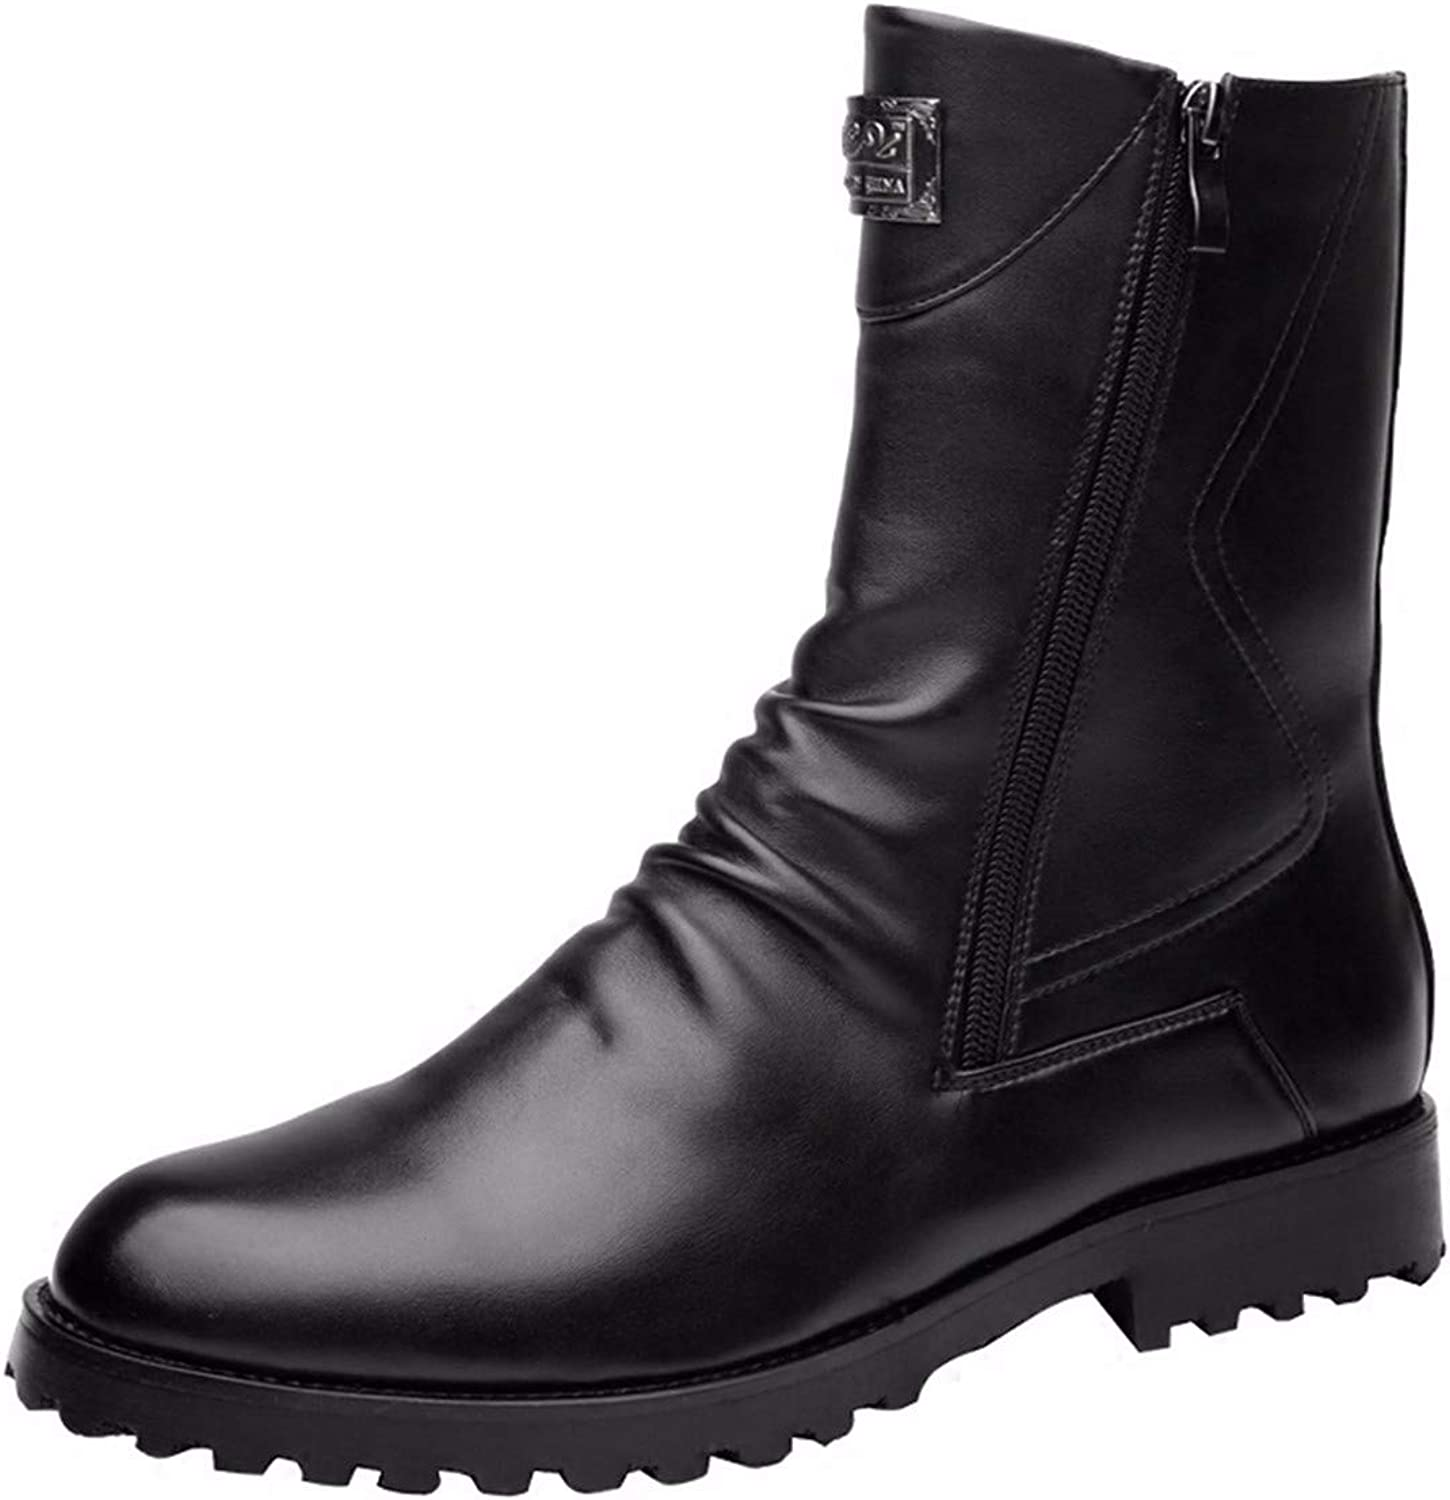 KMJBS Men'S shoes Leather Martin Boots High Autumn And Winter English Casual Leather Boots Single shoes.